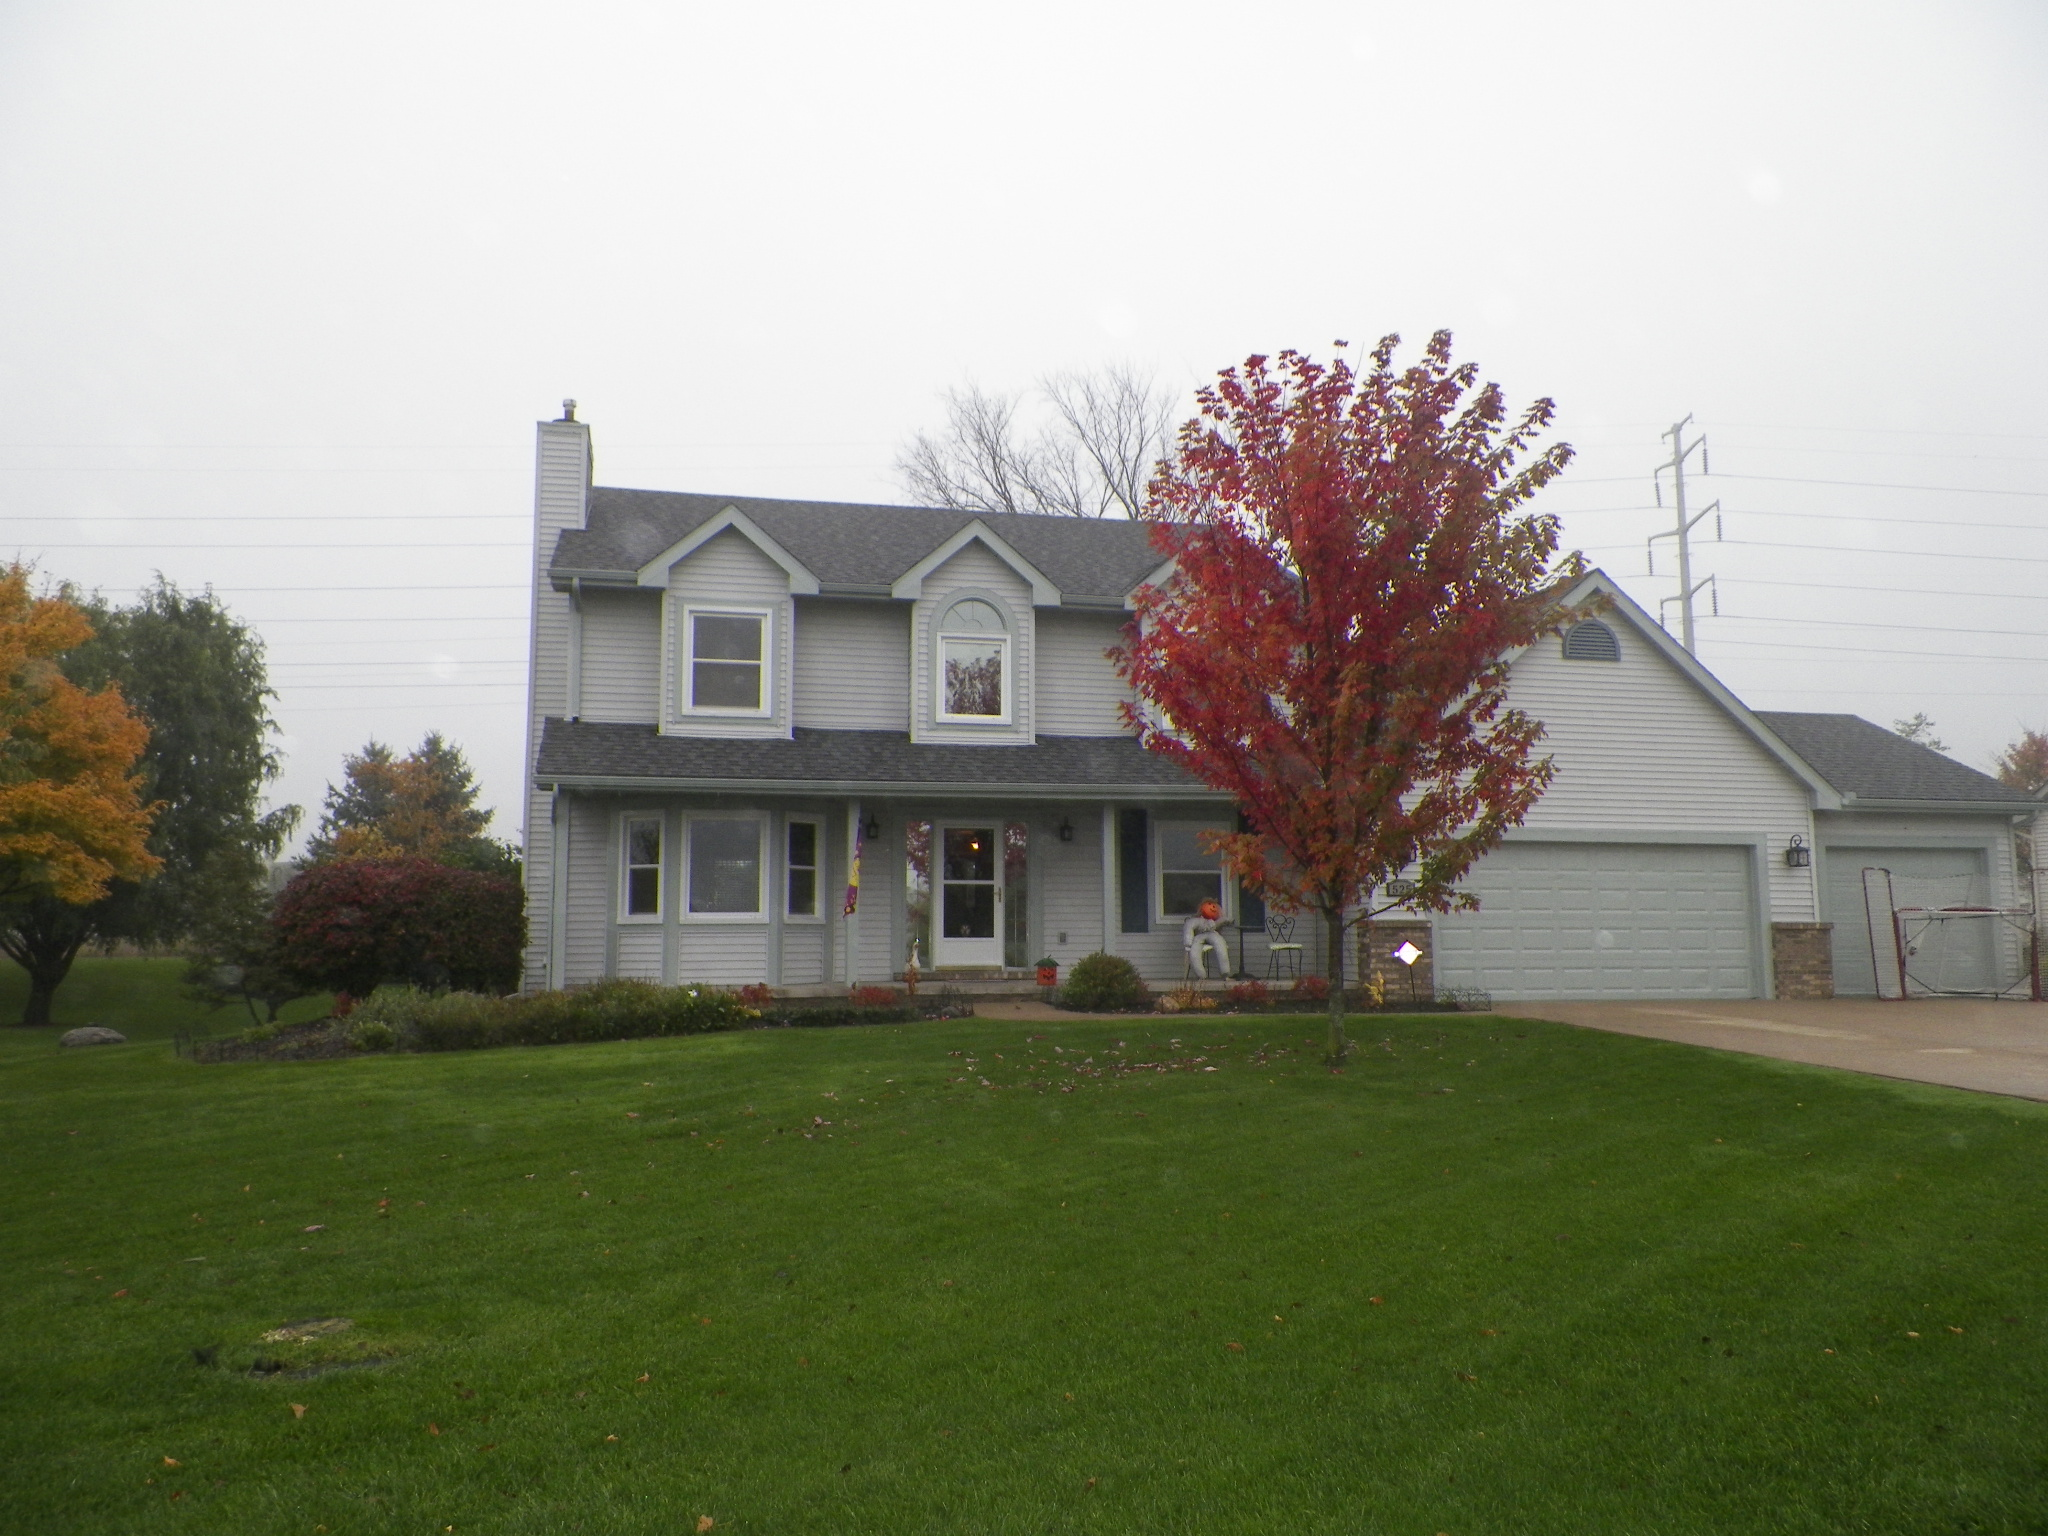 Cloverview- Howell - $235,000   DOM 57 / Sold for 99% of asking price / 14 Showings